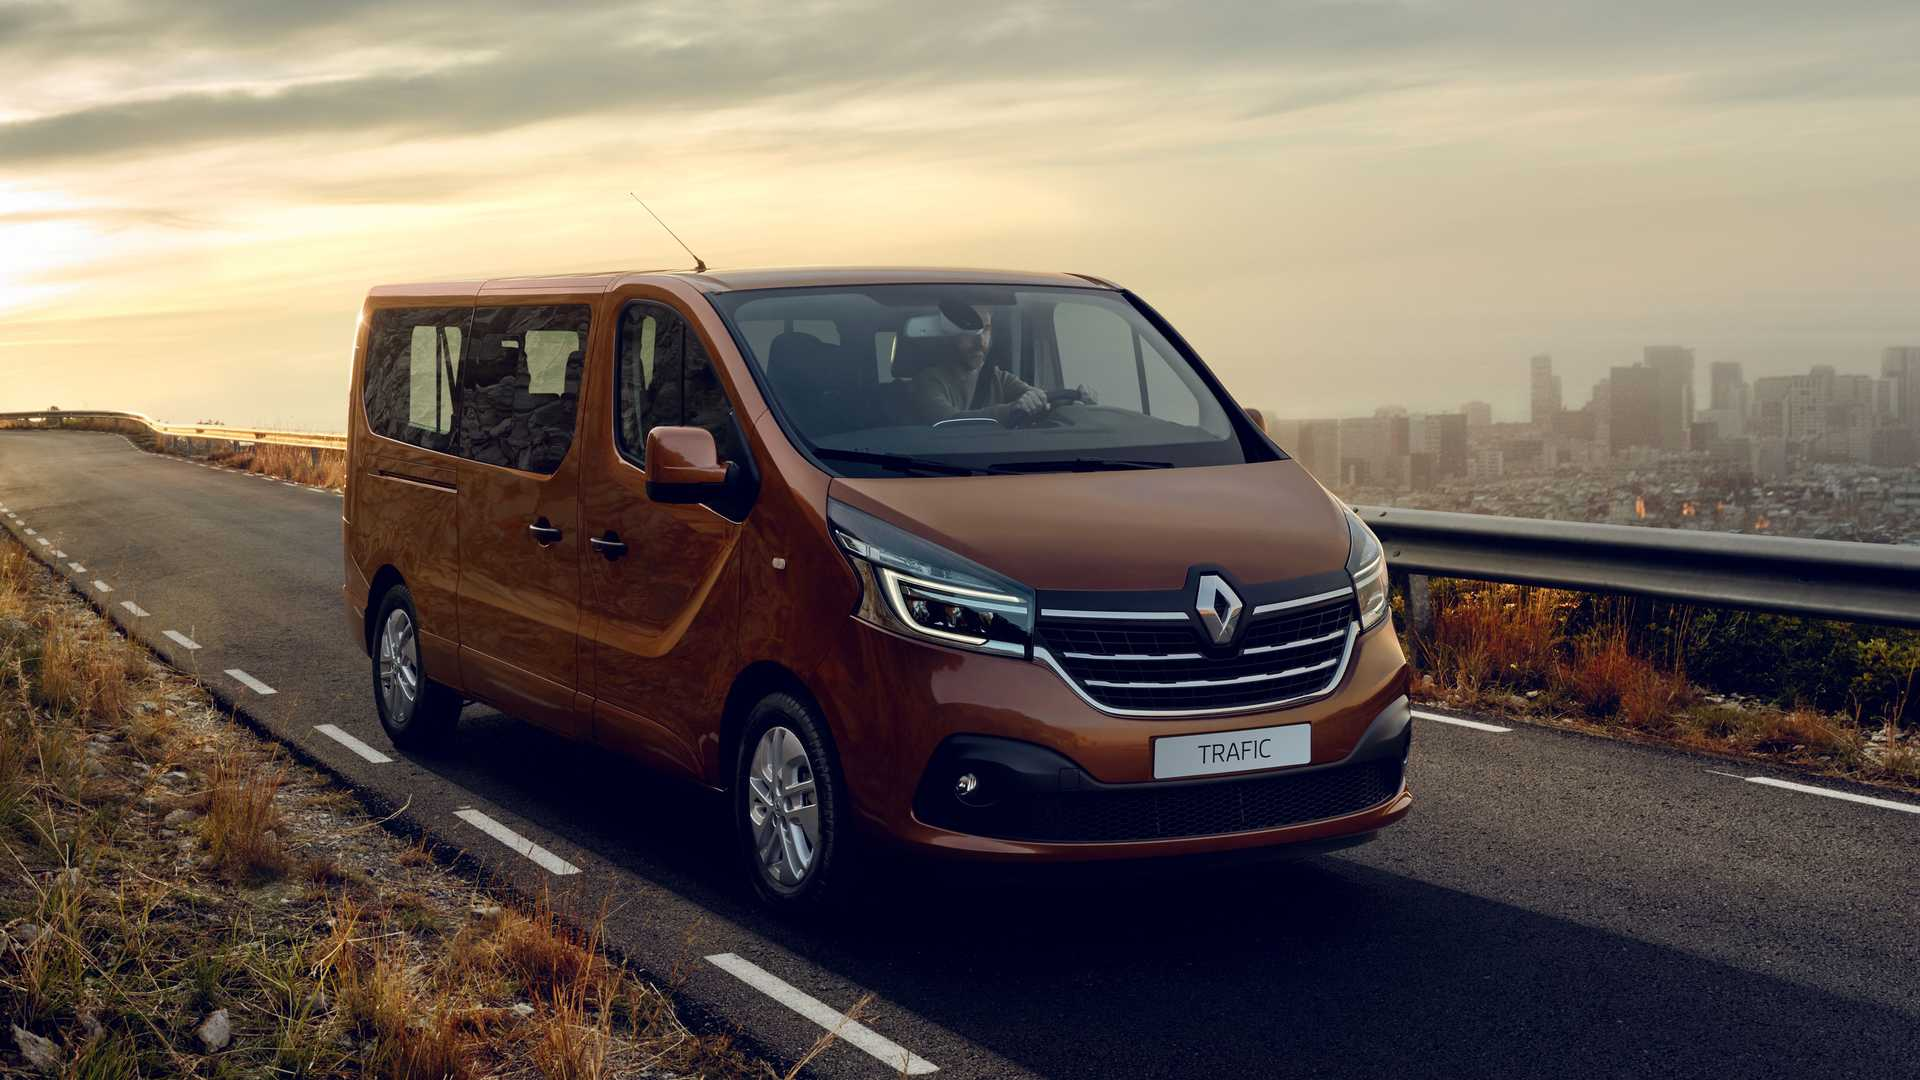 2020 Renault Trafic Redesign